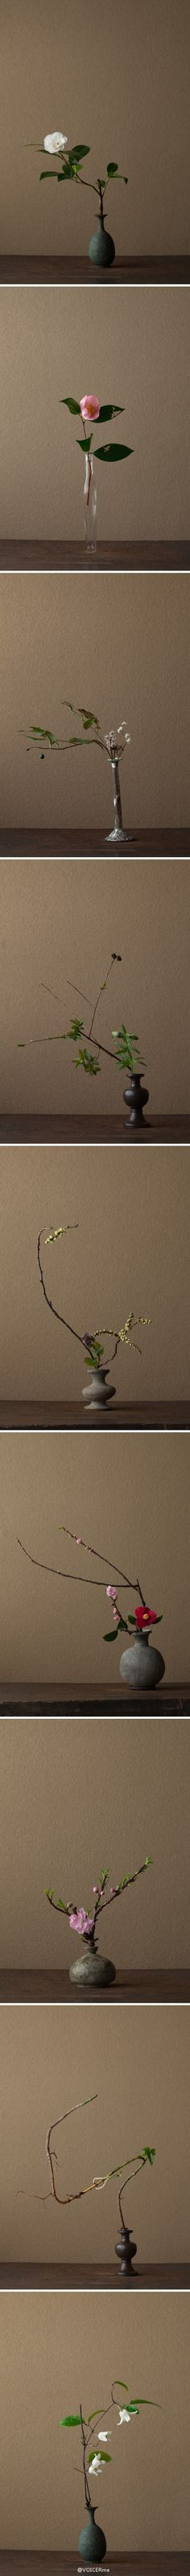 so simple and beautiful, from Kawase Toshiro